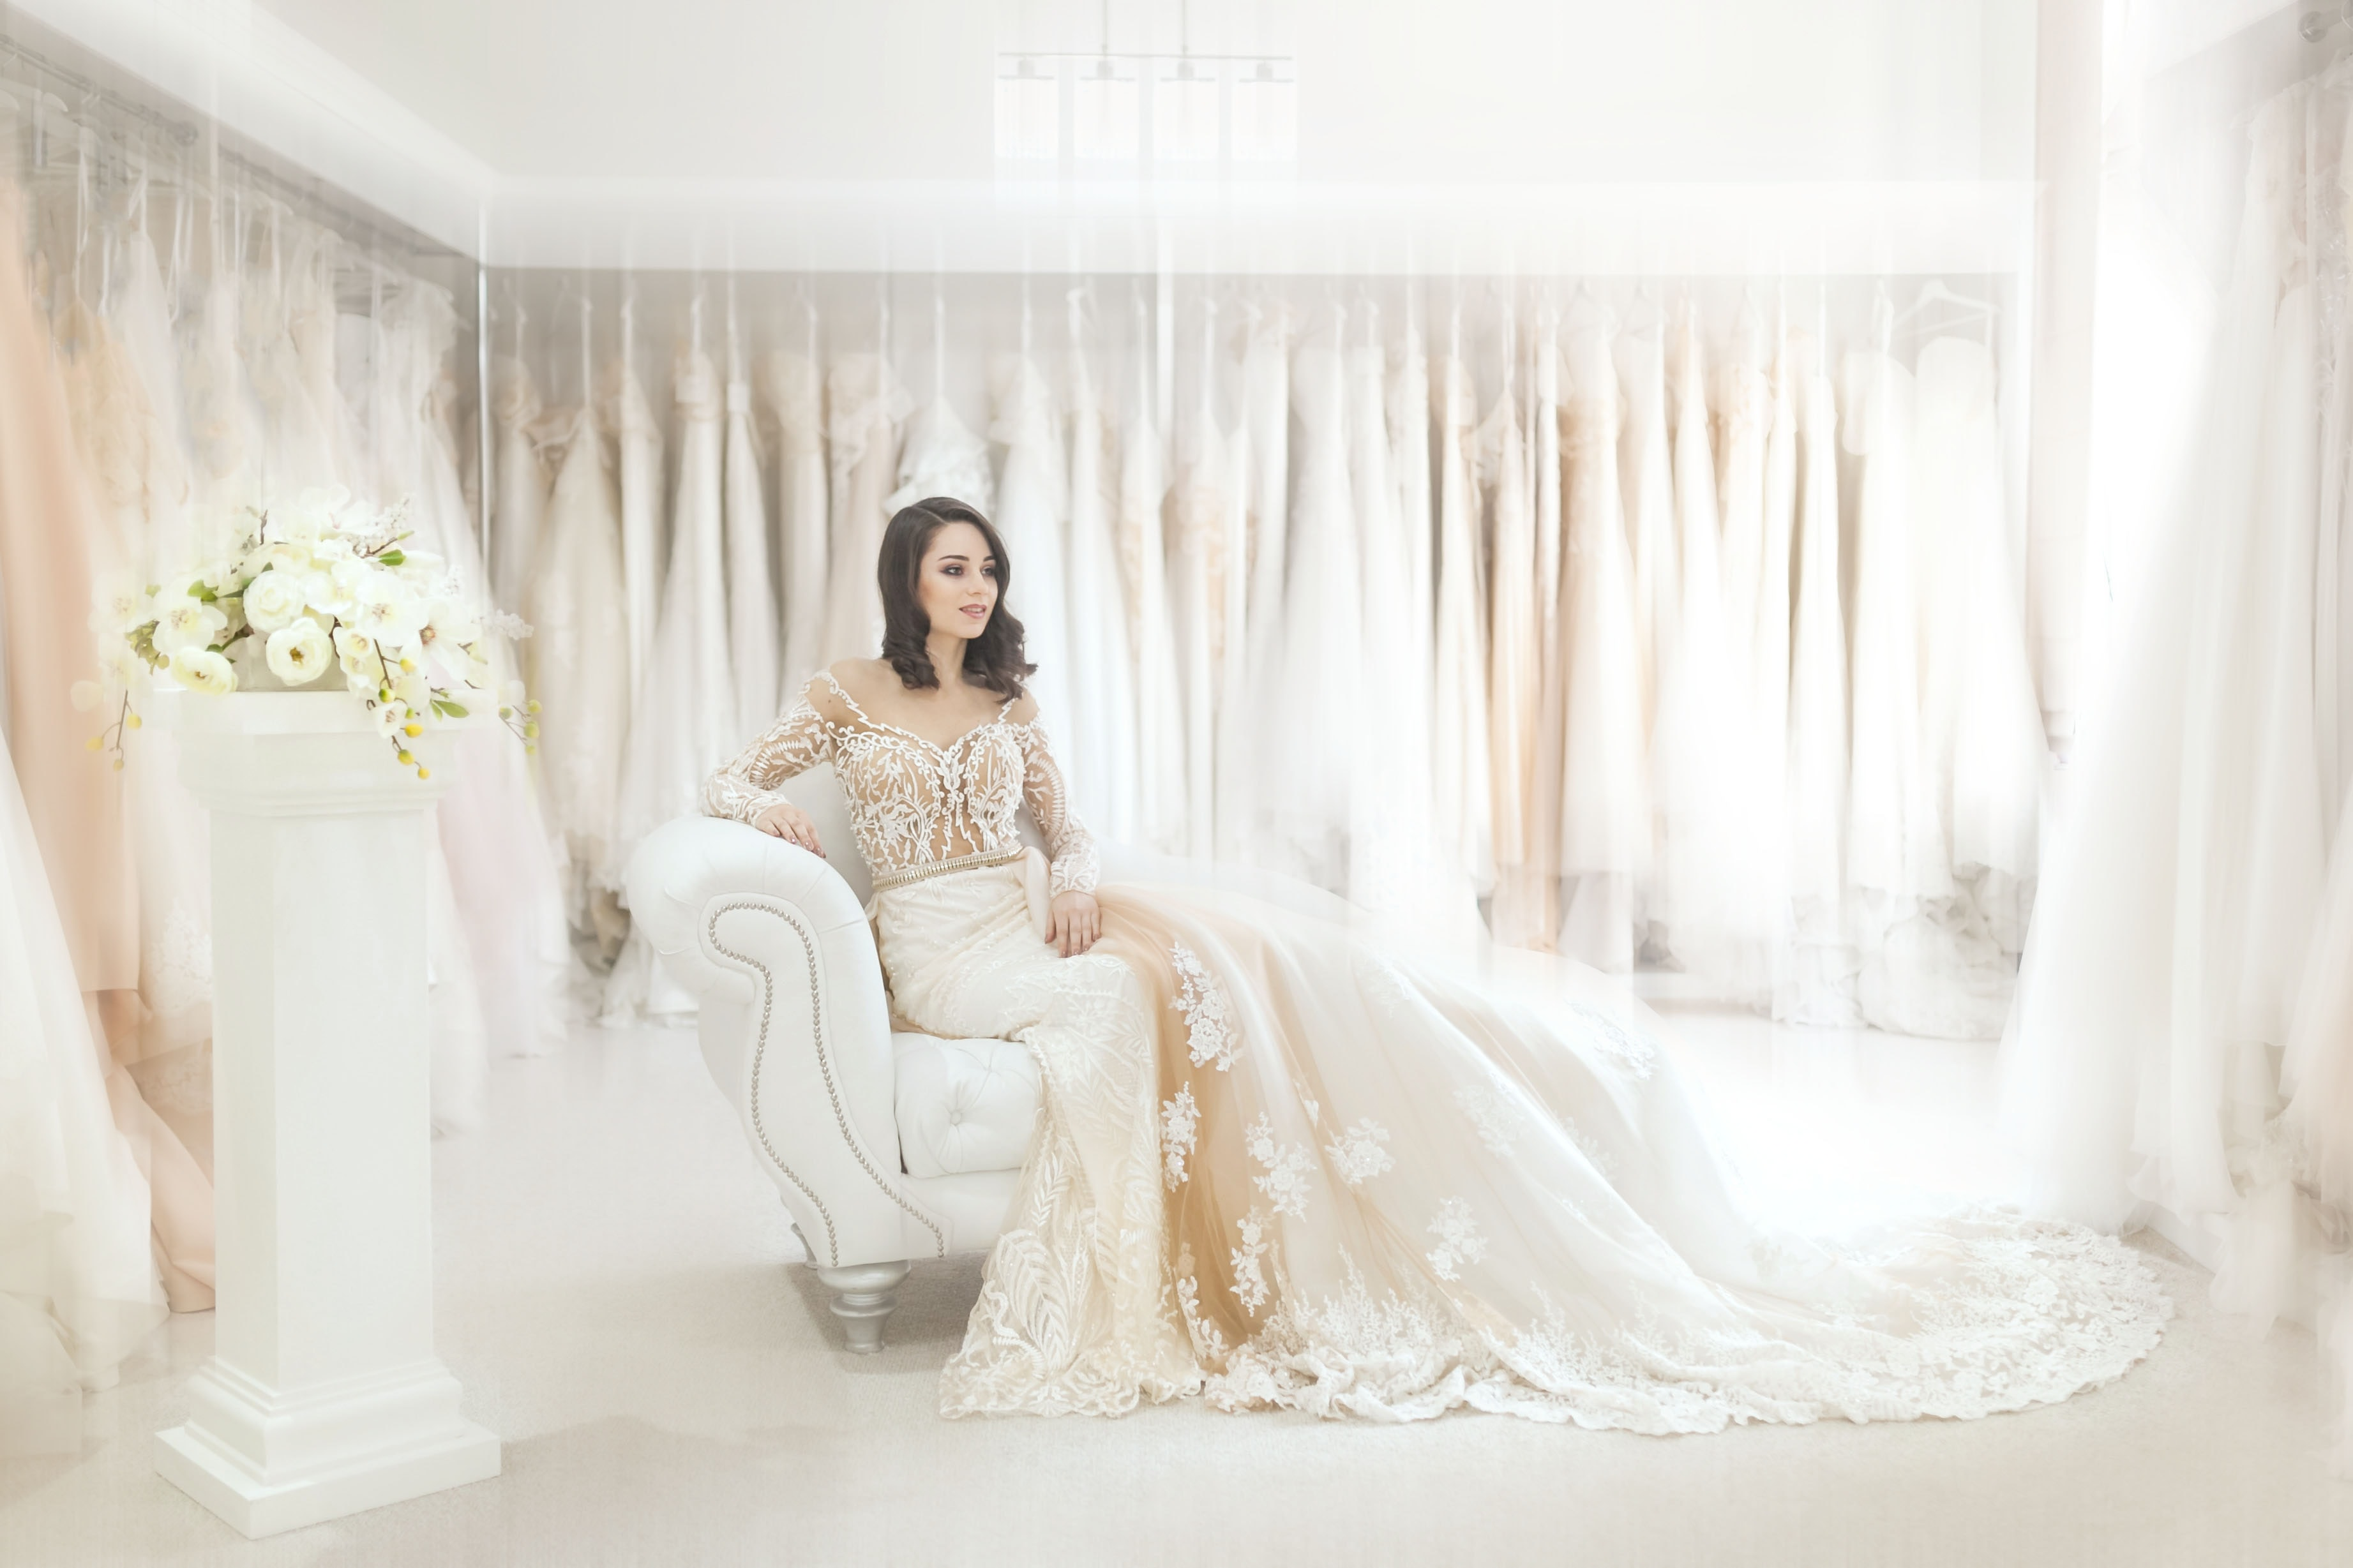 A woman in a bridal dress sitting on a white leather armchair in a white room